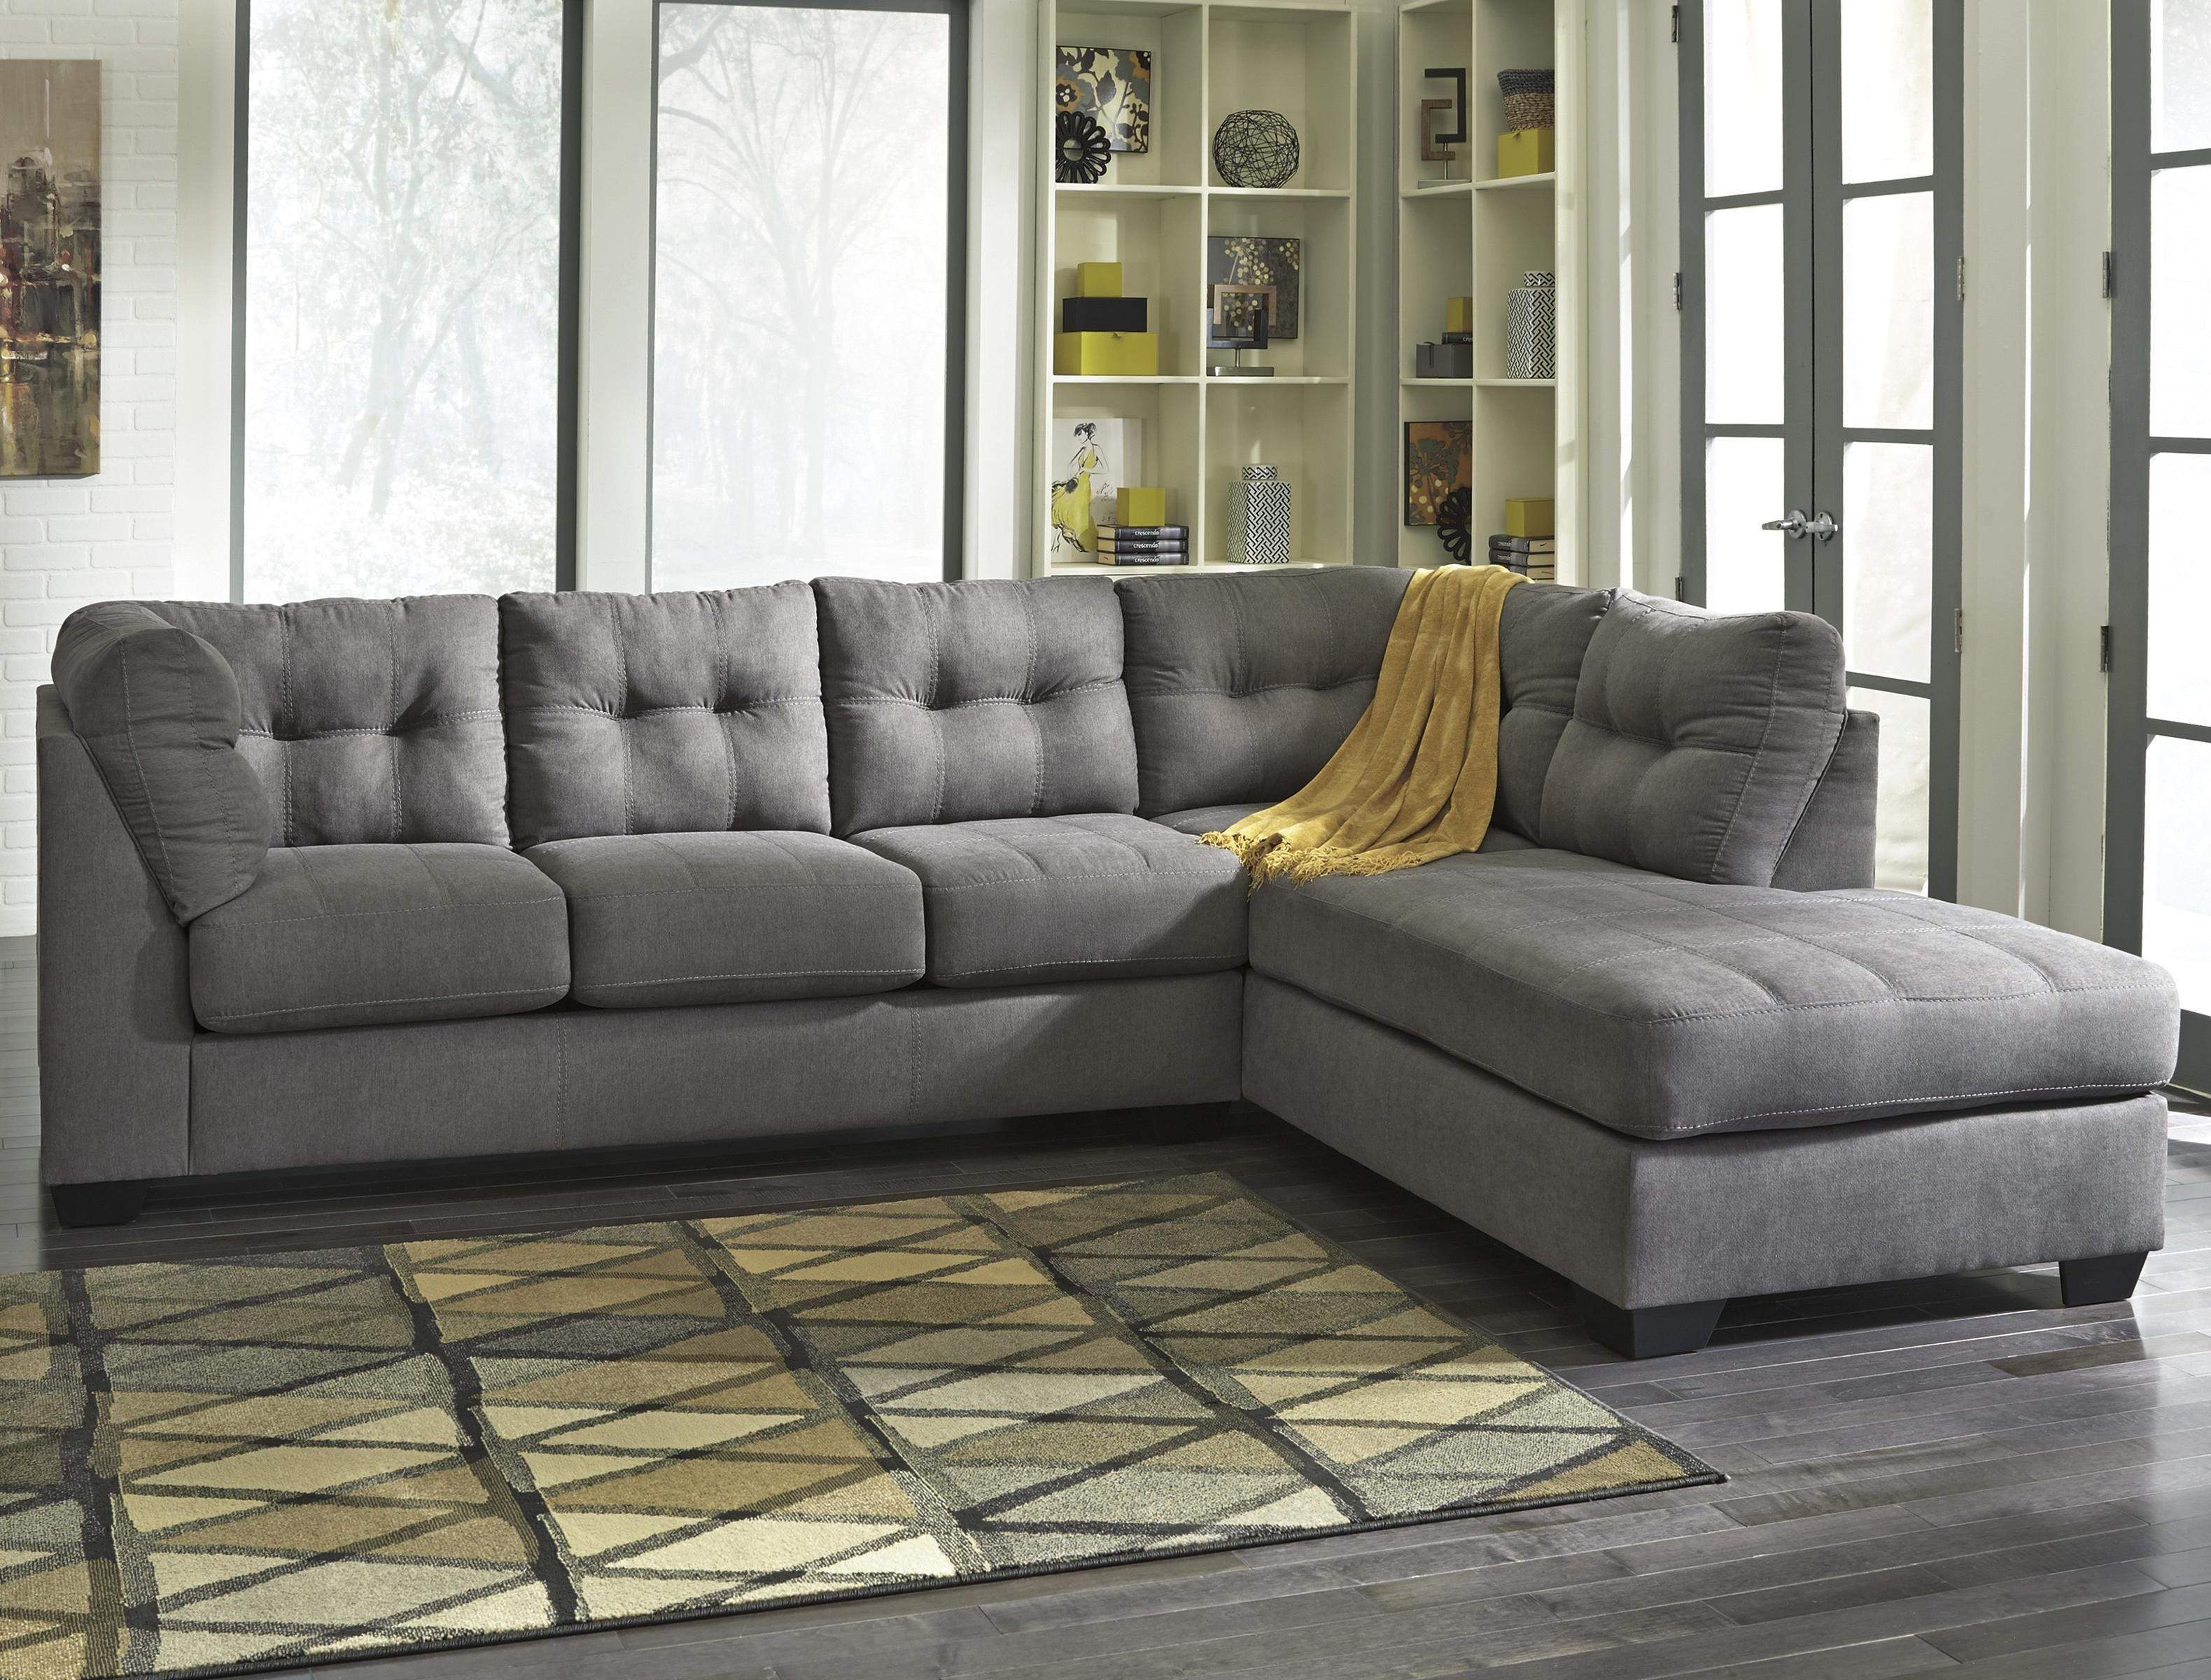 Best Benchcraft Maier Charcoal 2 Piece Sectional W Sleeper 640 x 480